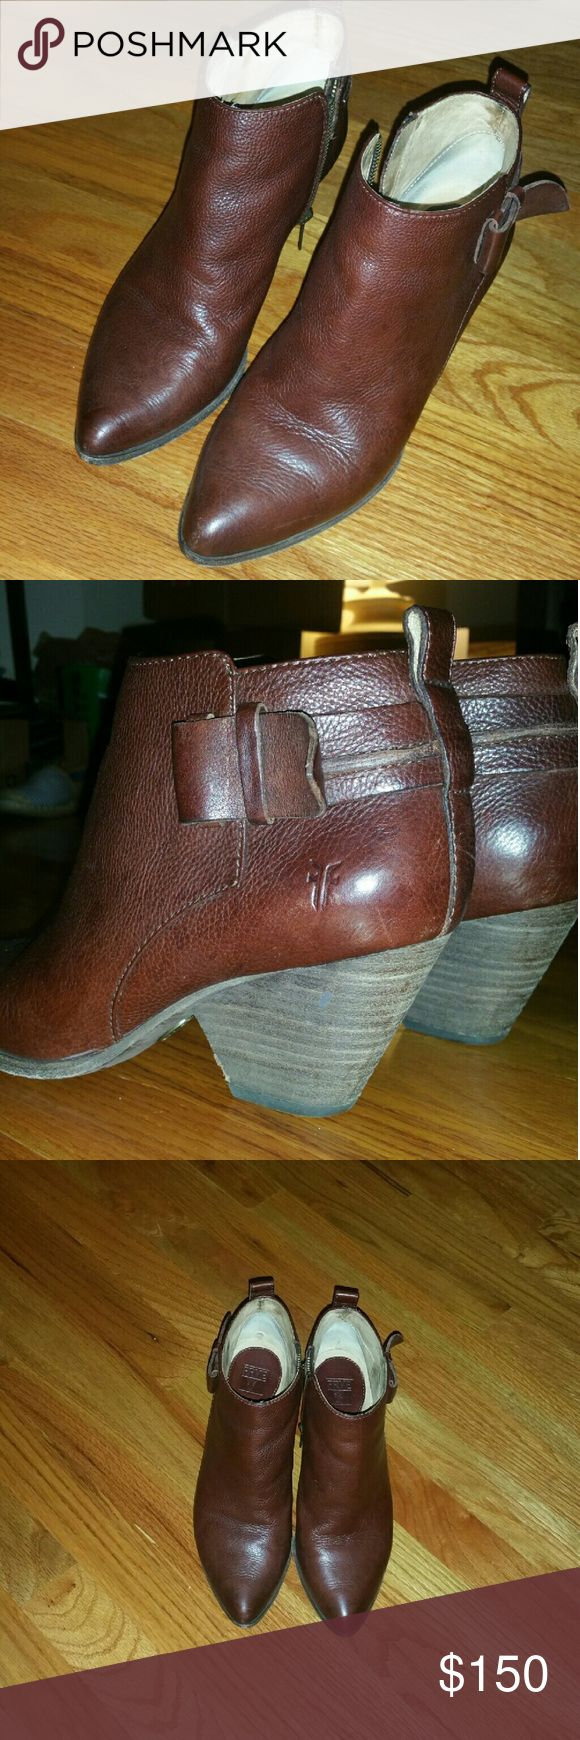 Frye ladies ankle boots Excellent condition! Beautiful boots. Frye Shoes Ankle Boots & Booties